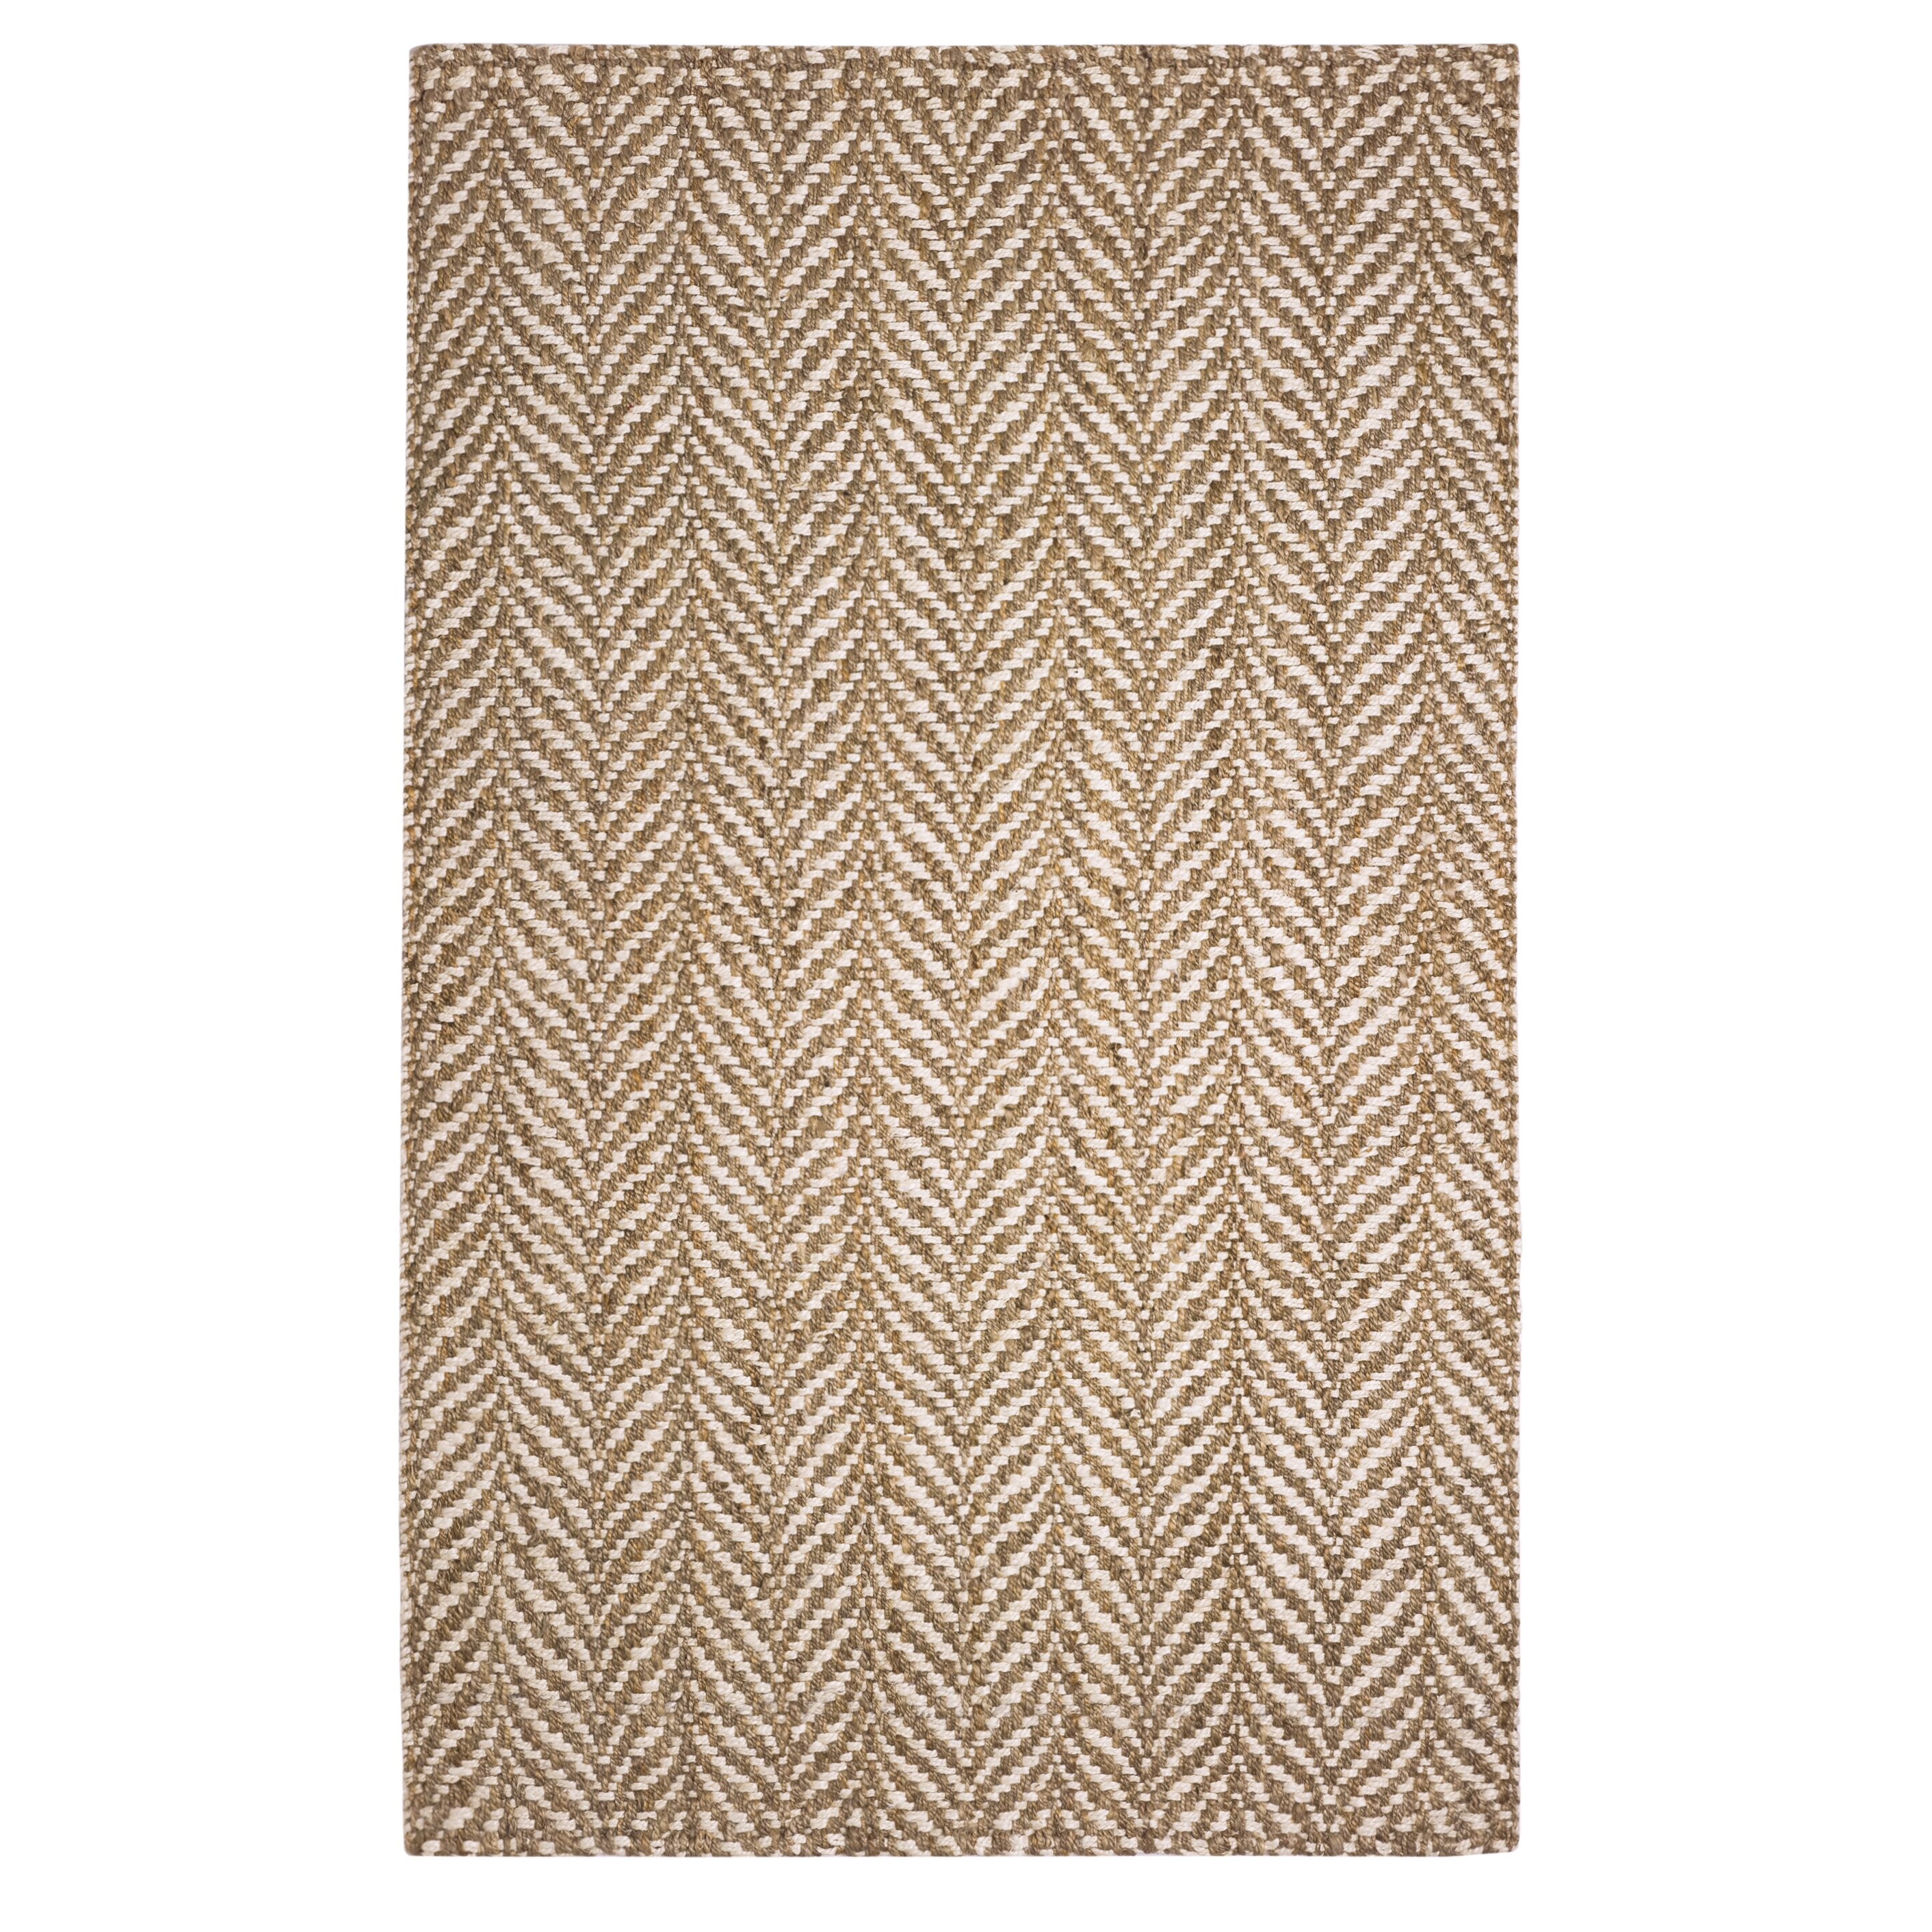 the conestoga trading co hines hand woven brown white